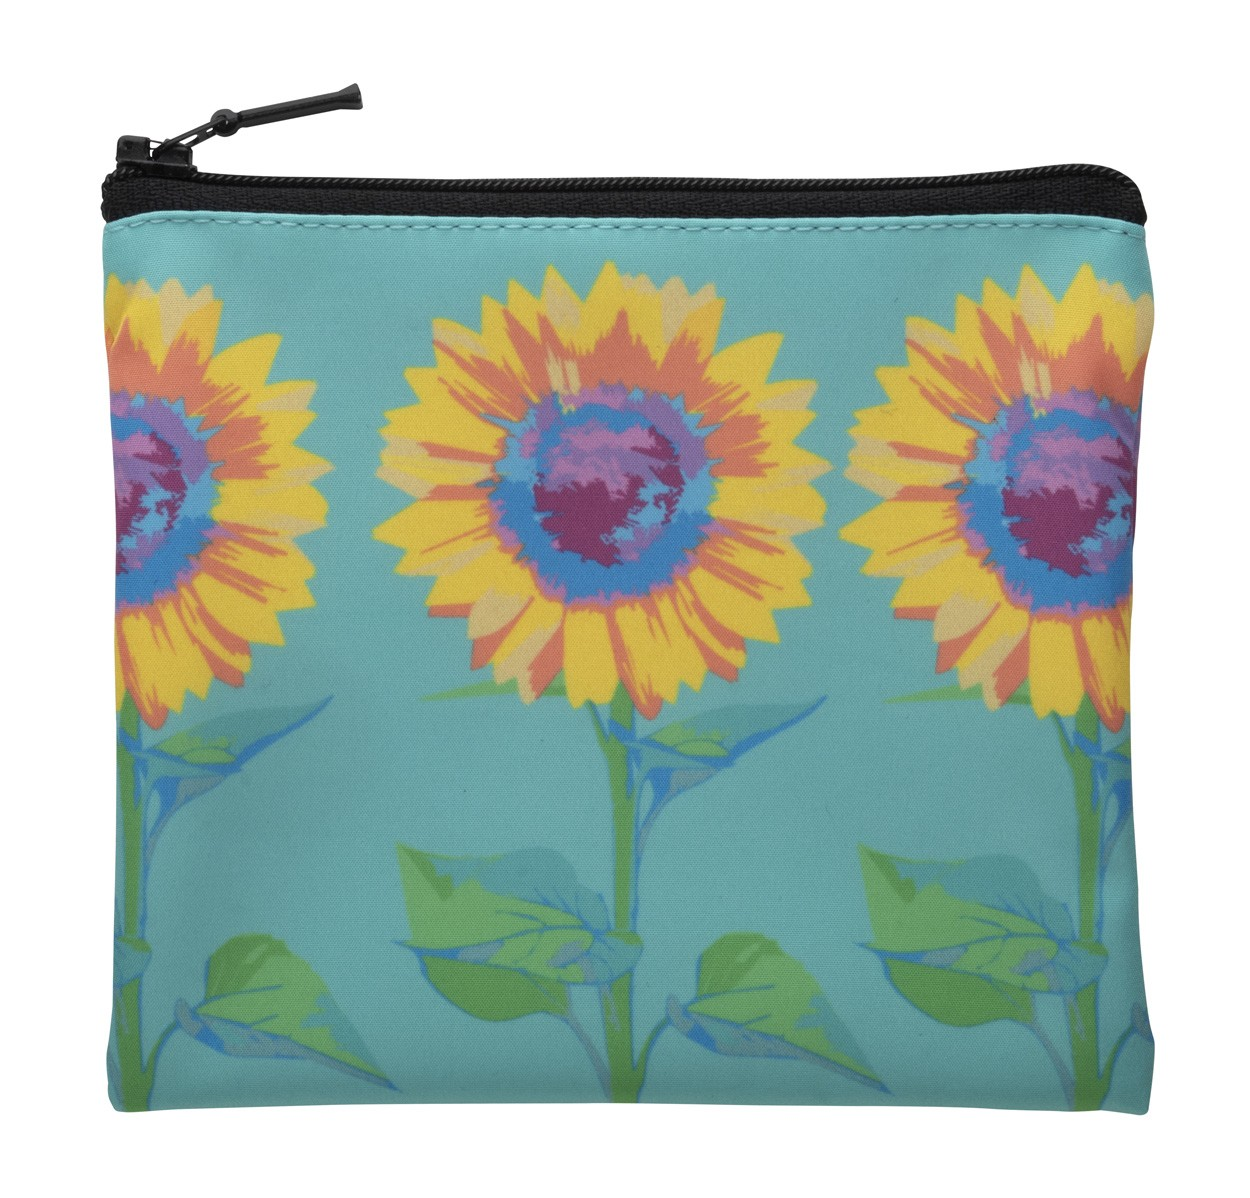 TROUSSE DE TOILETTE COSMETIQUE SUBLIMATION DIANE